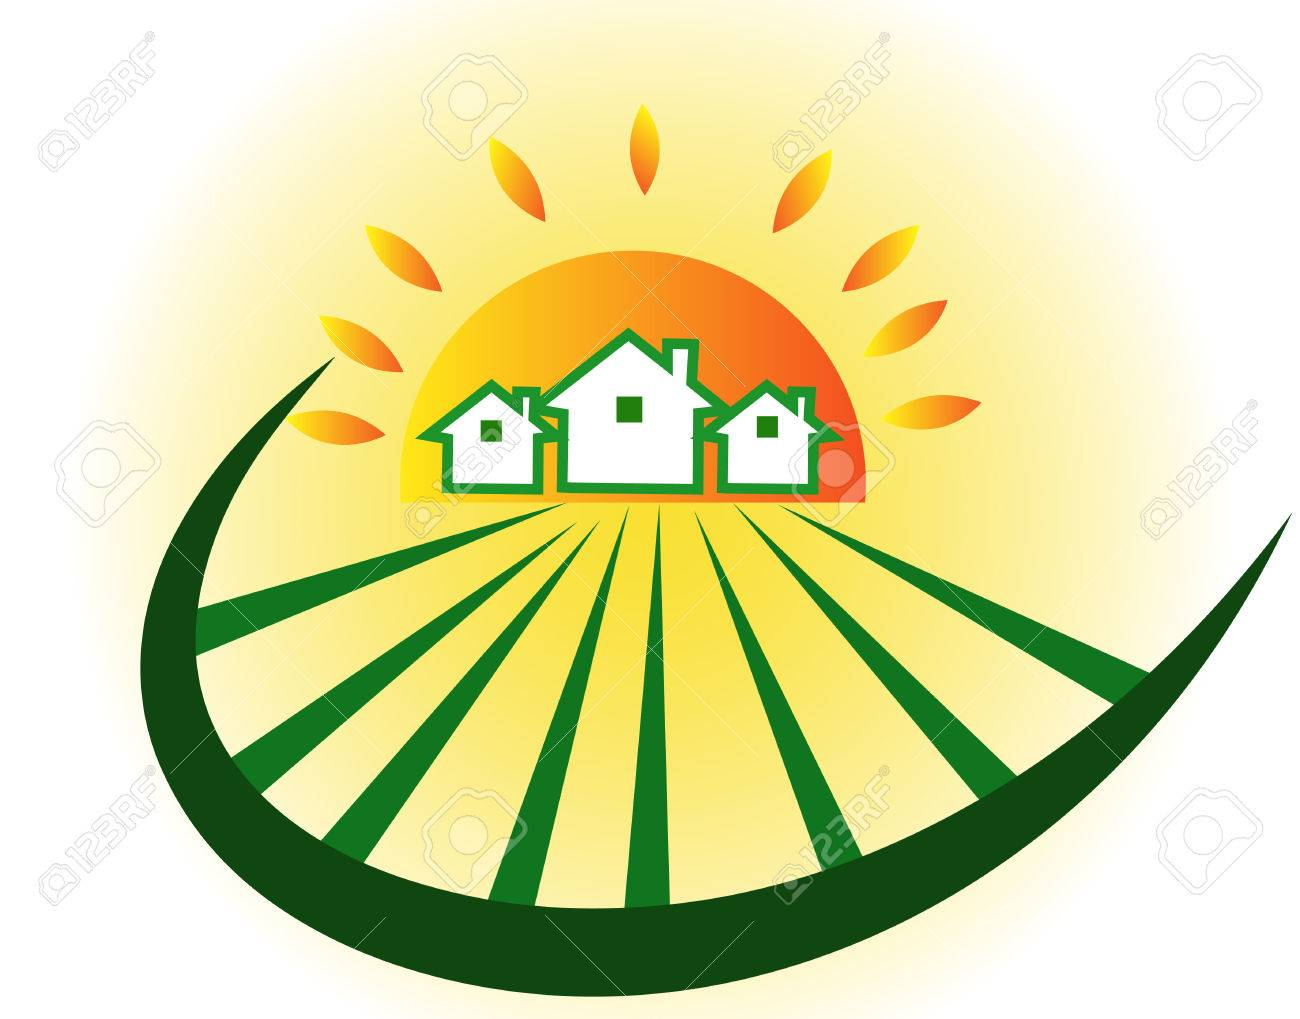 farm houses with sun royalty free cliparts vectors and stock rh 123rf com Cartoon Pictures of Farms and Crops Troctors Free Commercial Vector